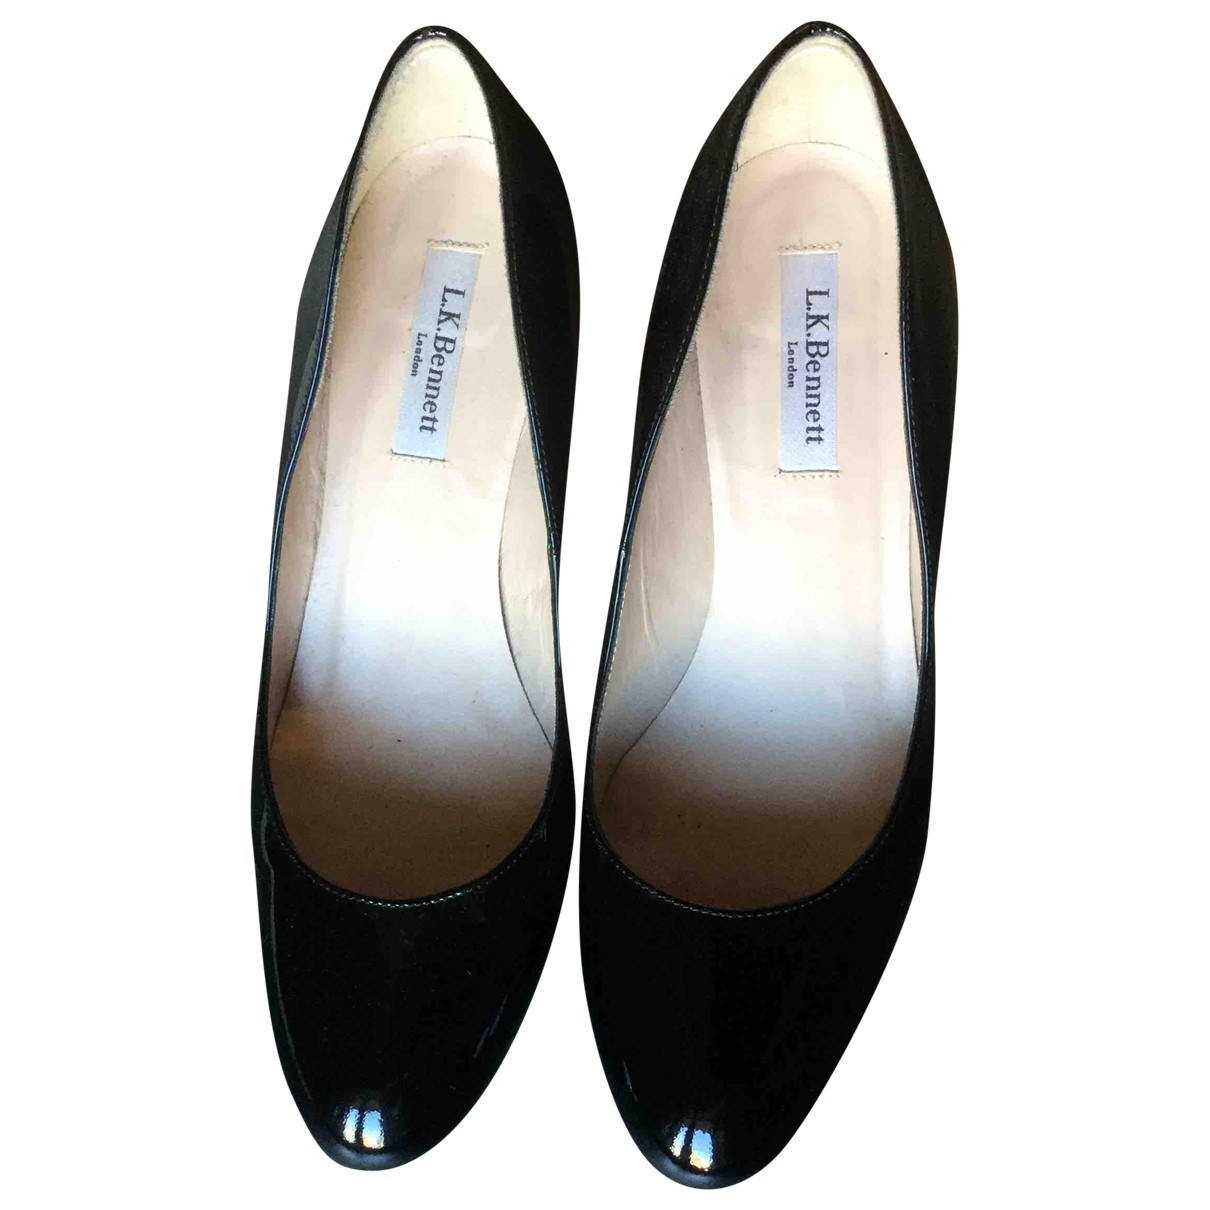 Lk Bennett \N Black Patent leather Heels for Women 39 EU